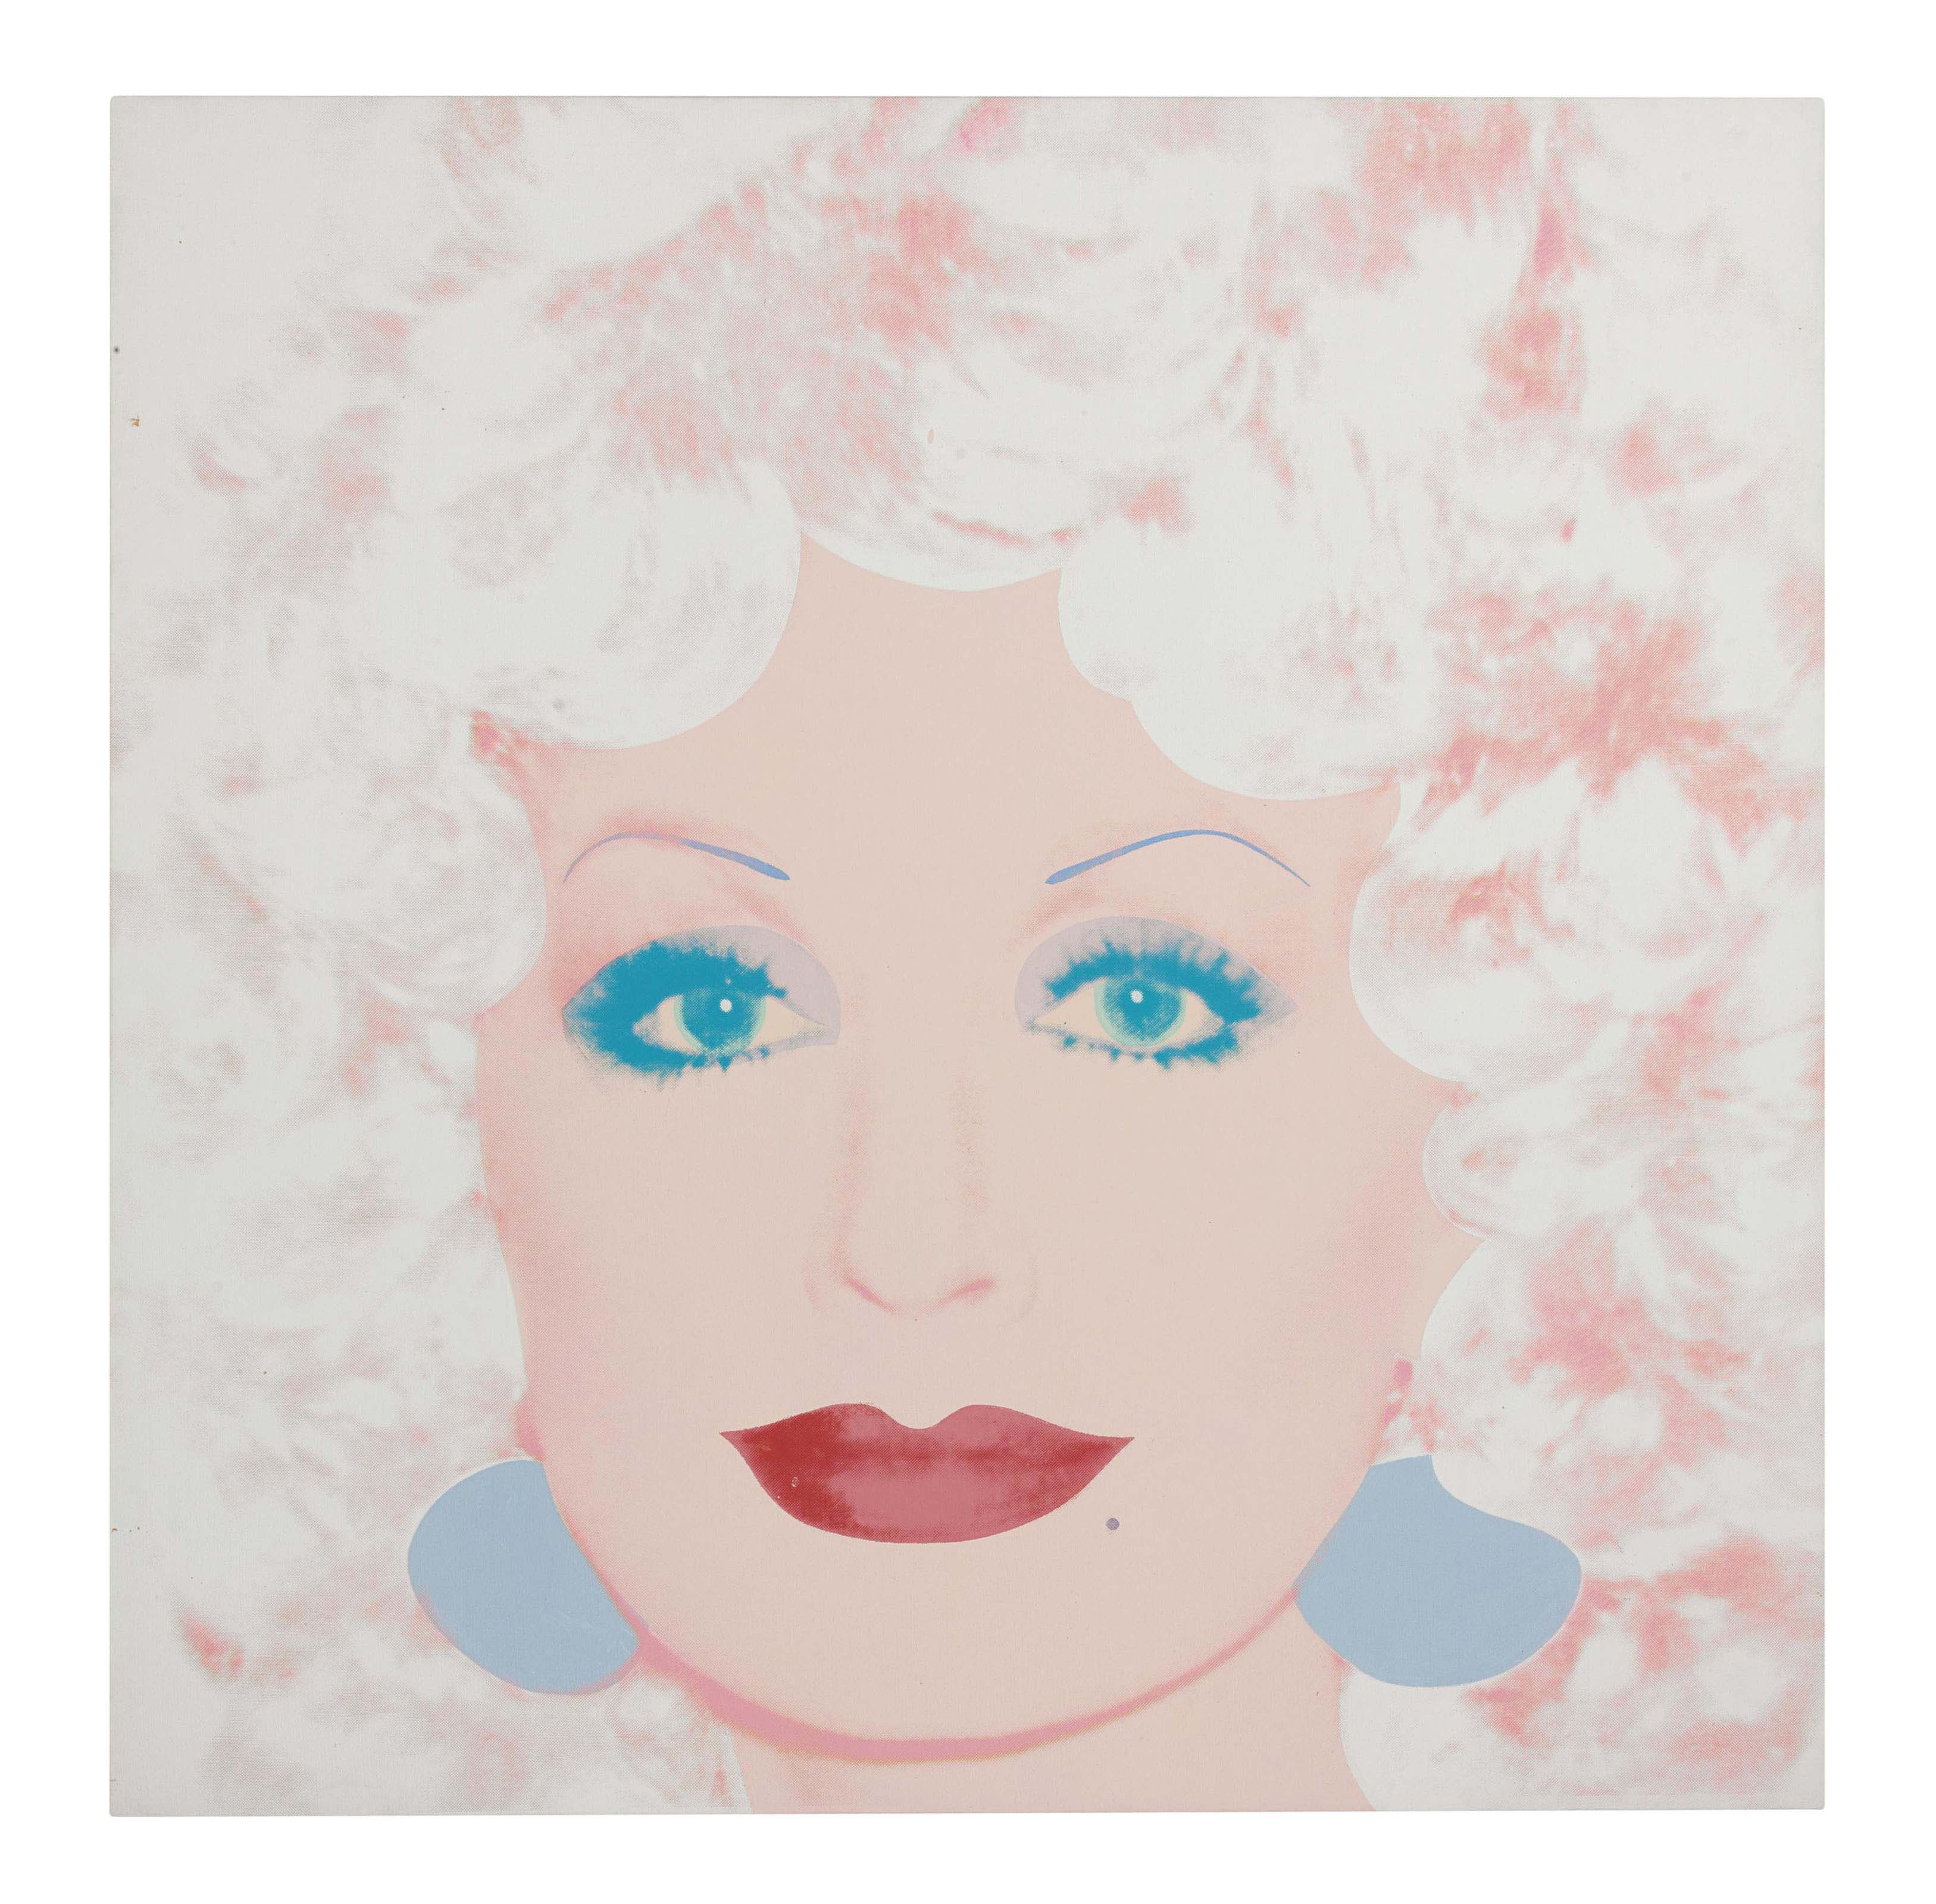 Andy Warhol (1928-1987) | Dolly Parton | 1980s, Paintings | Christie's